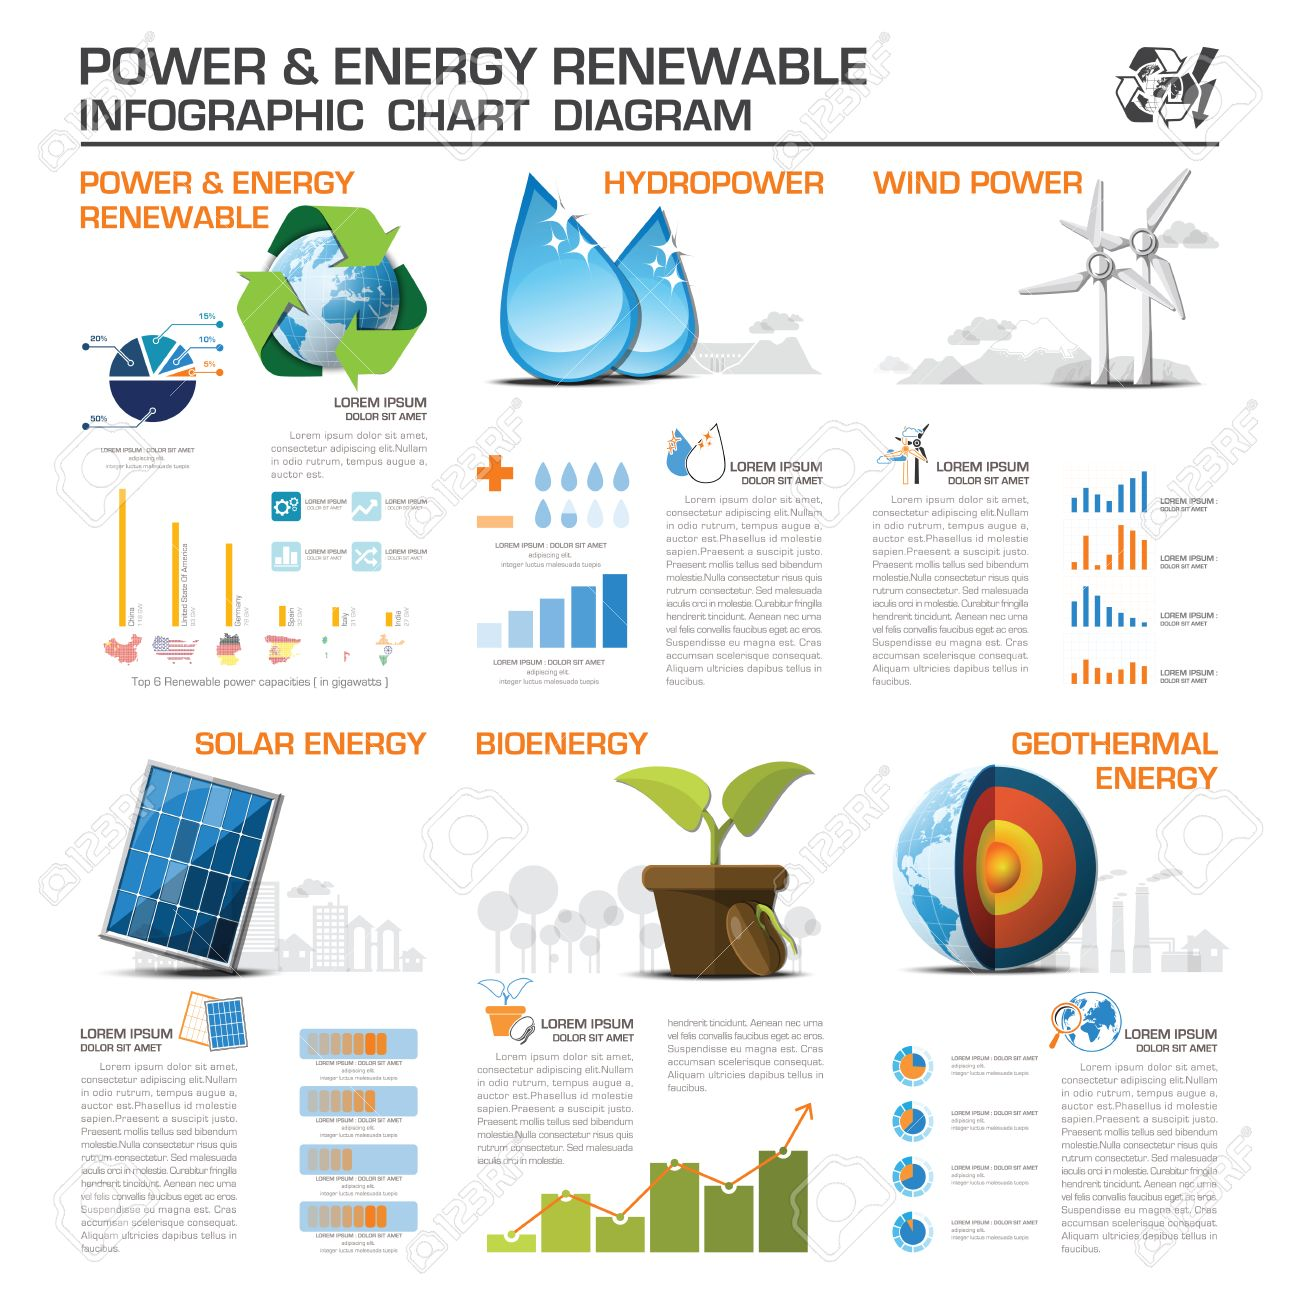 Power And Energy Renewable Infographic Chart Diagram Vector Design Template - 52418303